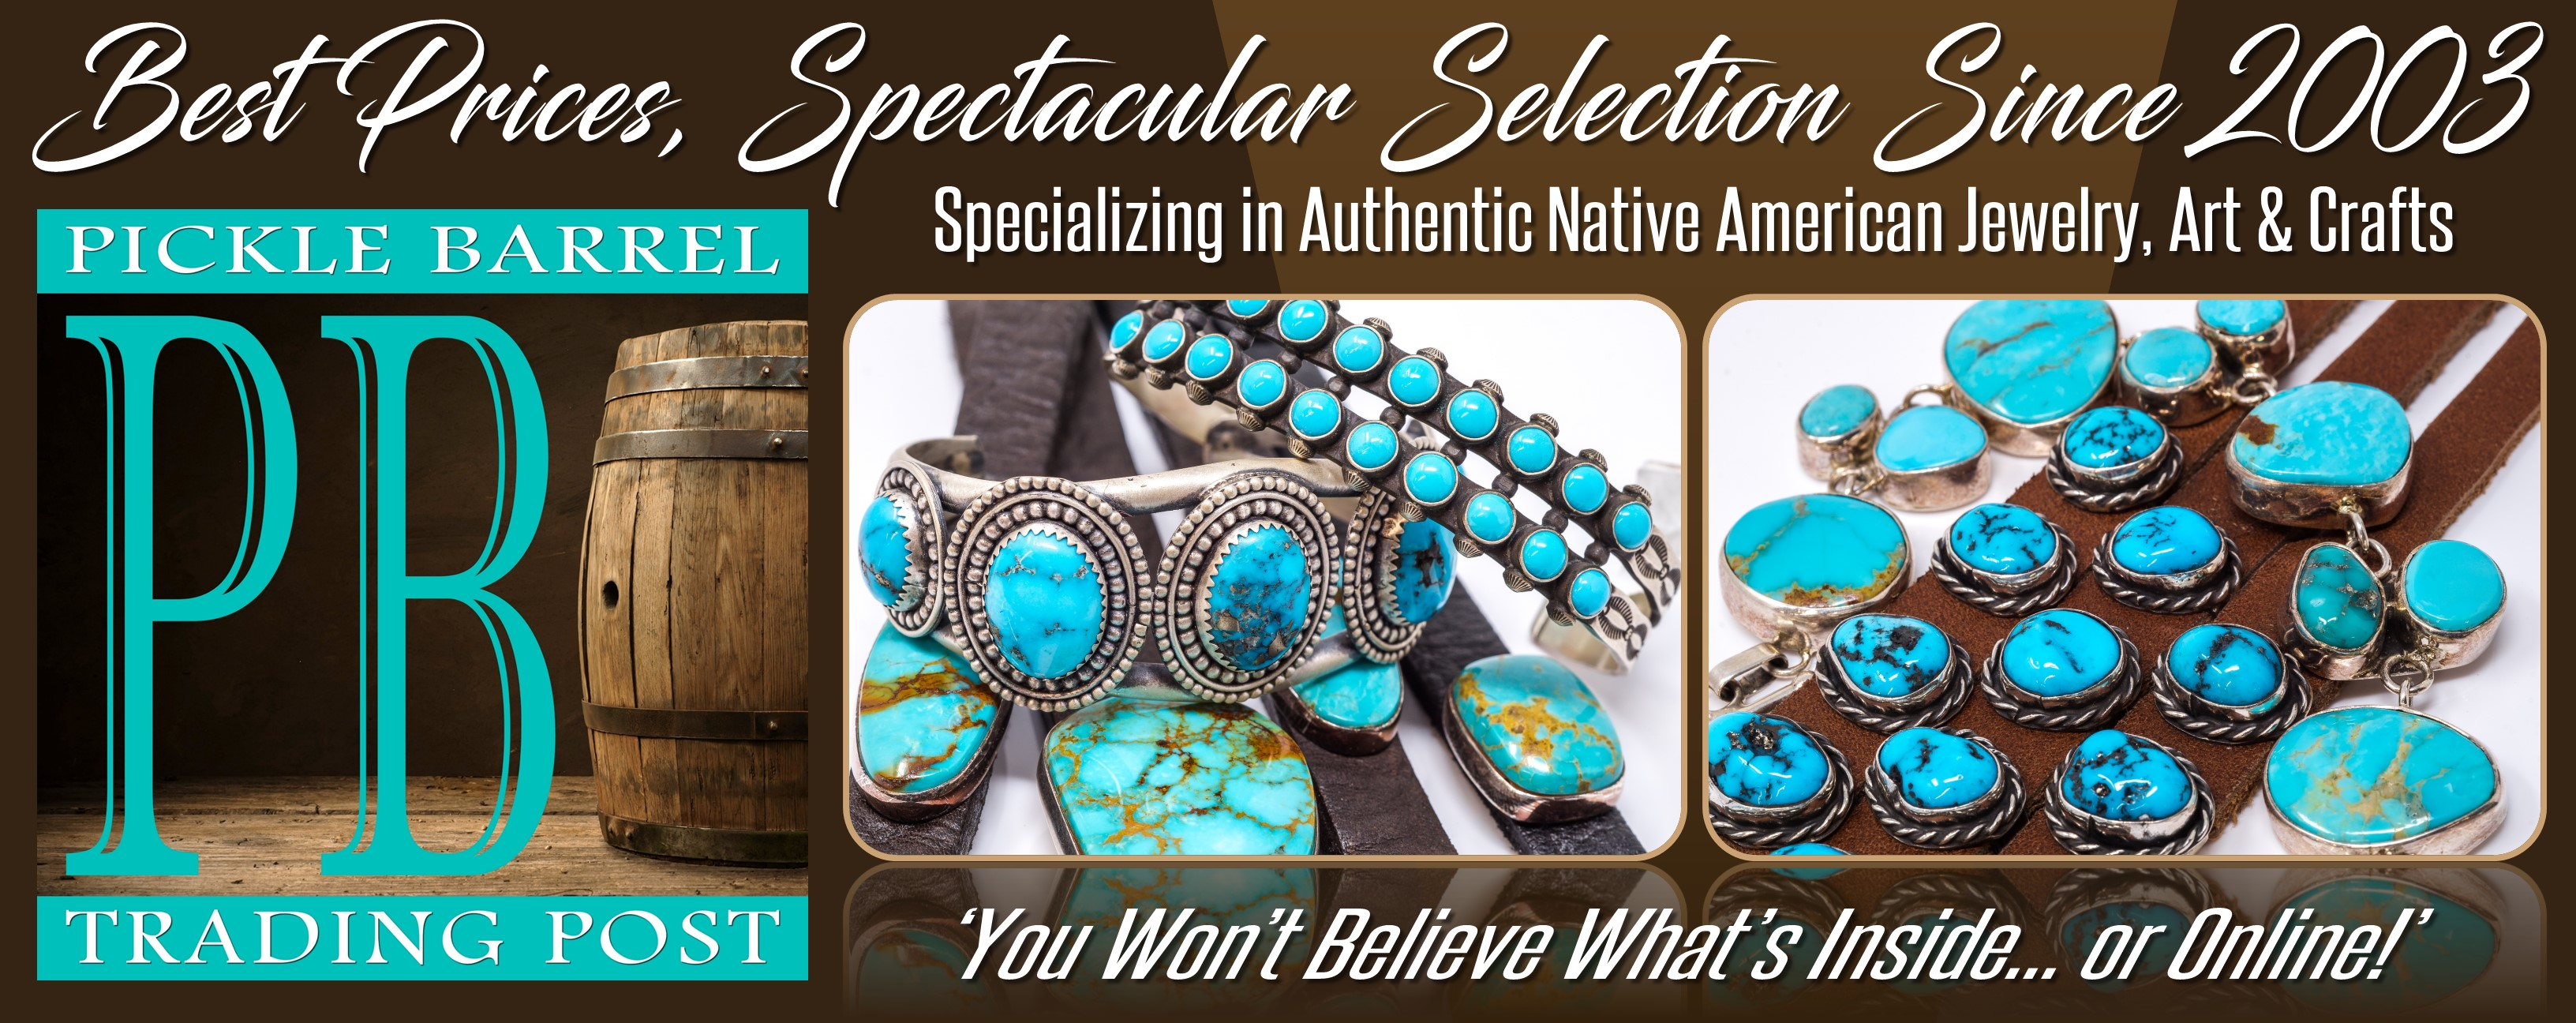 Native American-made turquoise and sterling silver jewelry at the Pickle Barrel Trading Post in Globe, Arizona.